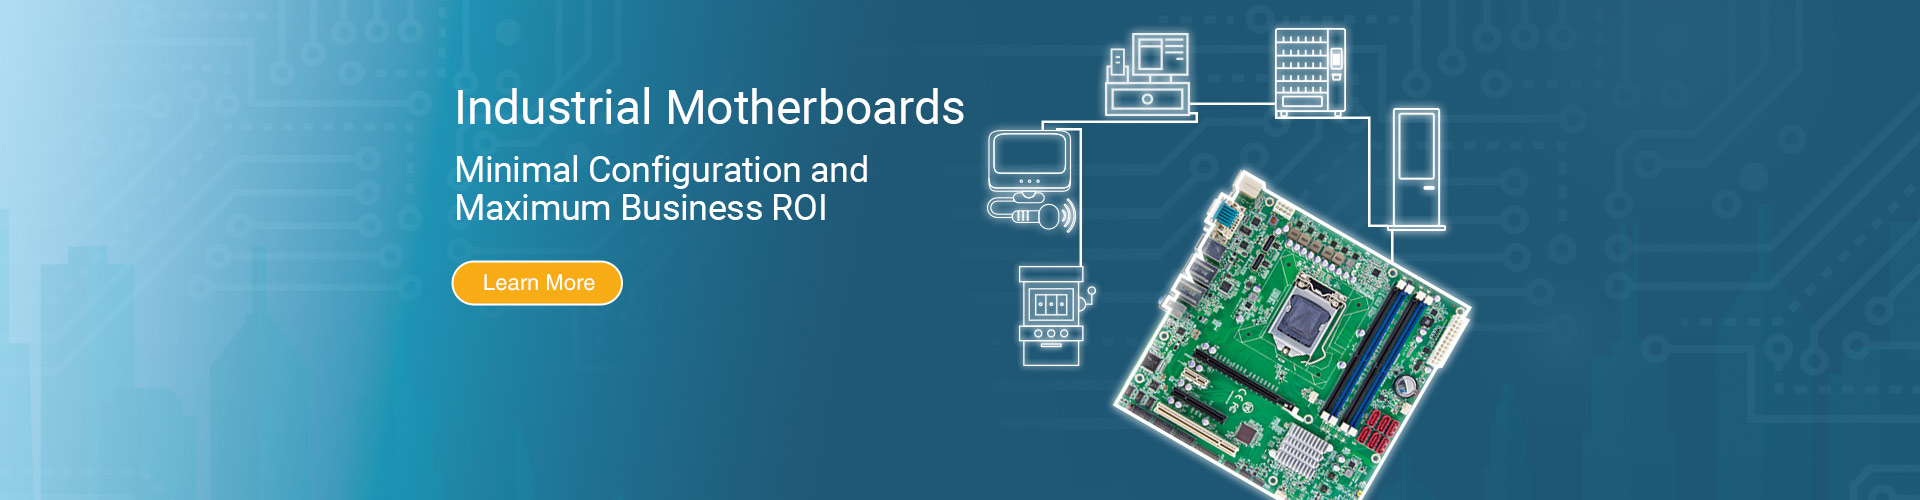 Rugged Industrial Motherboard - Embedded Computing